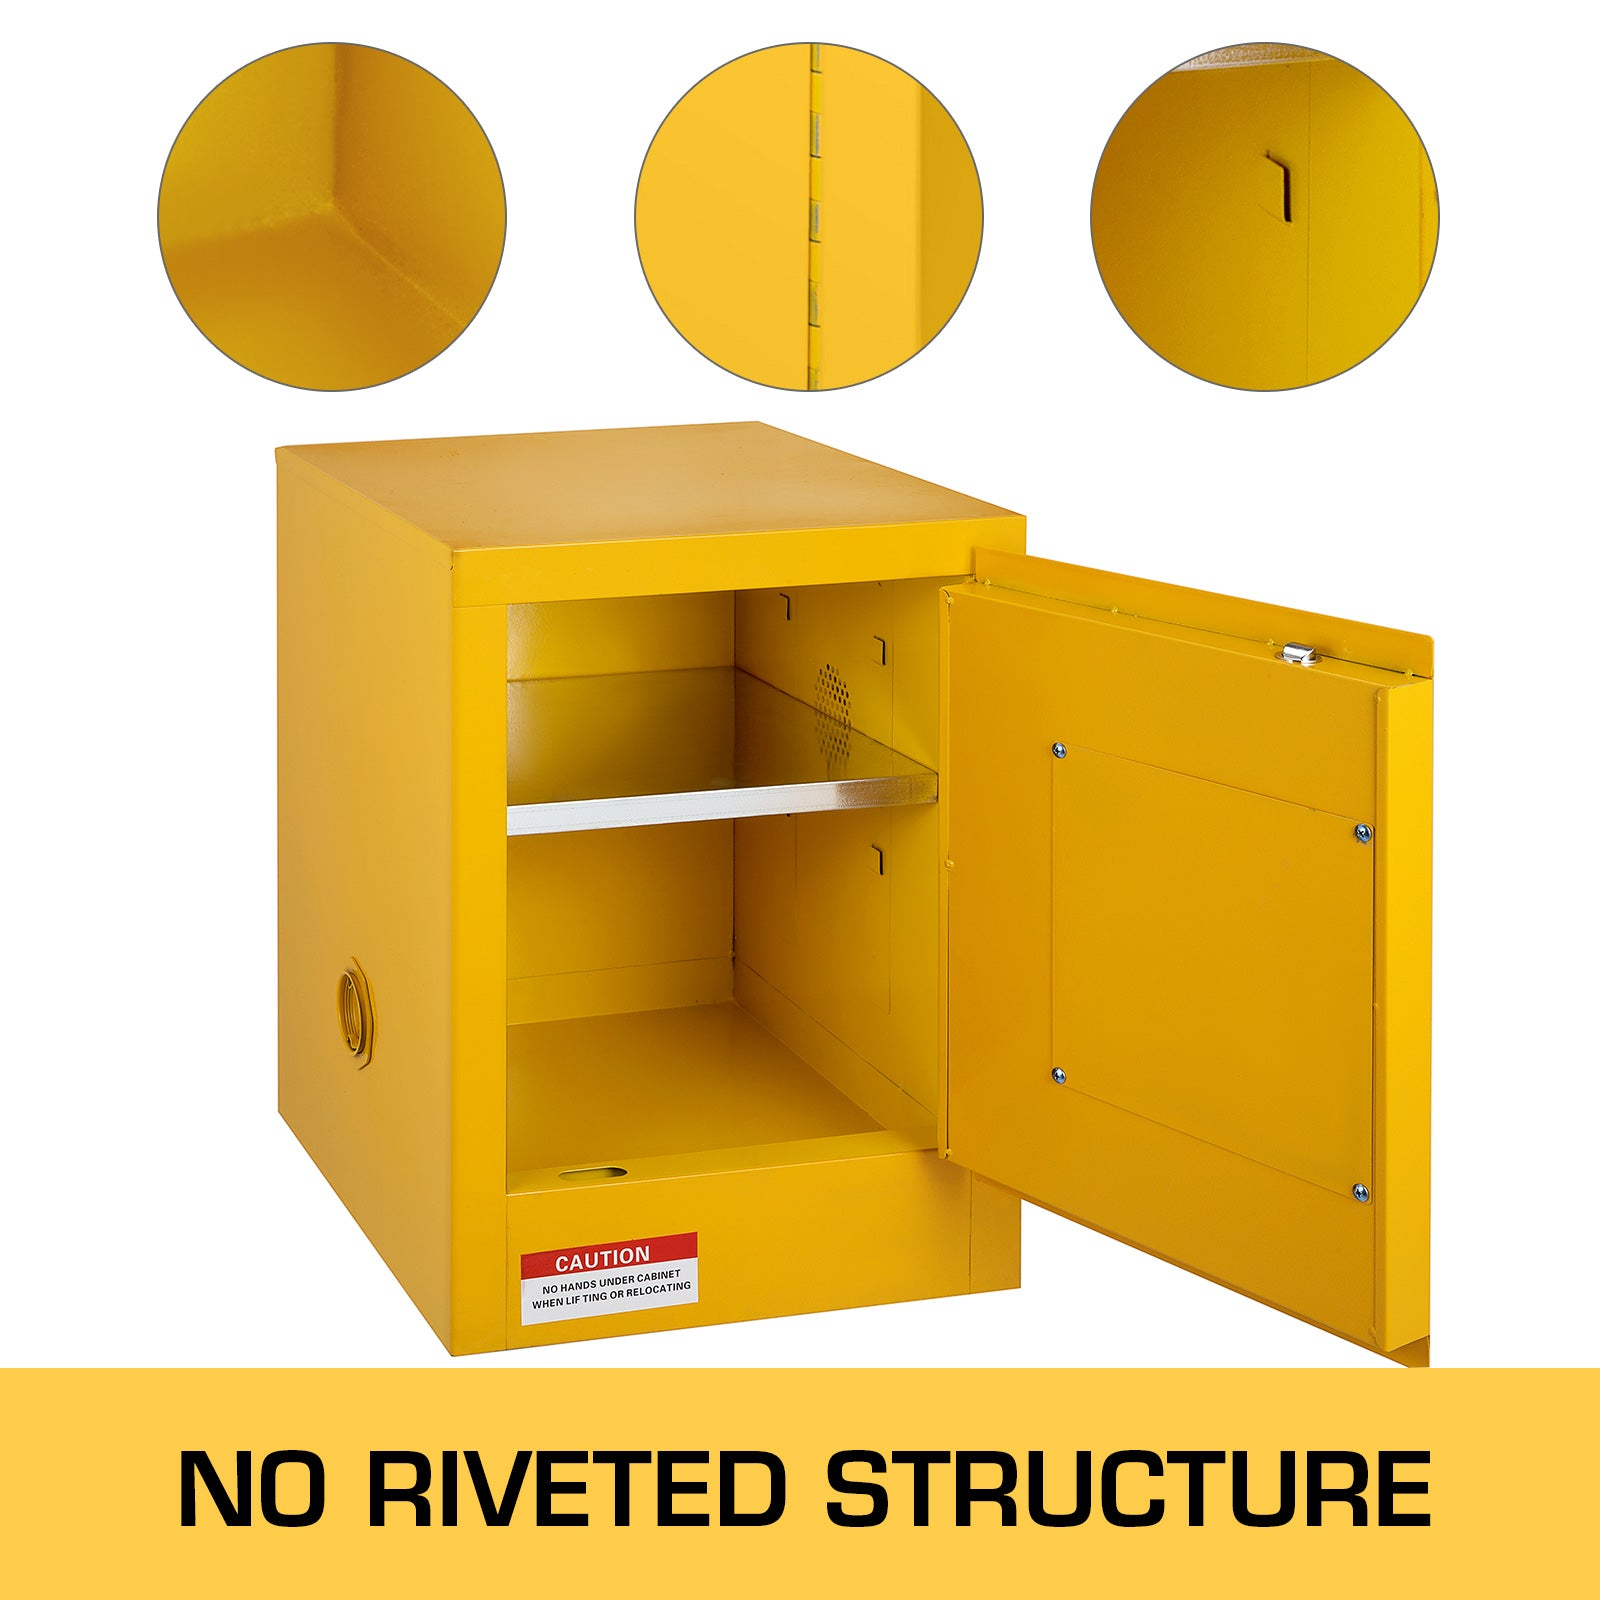 16 Gallon Safety Cabinet For Flammable Liquids Yellow Manual Warning Label